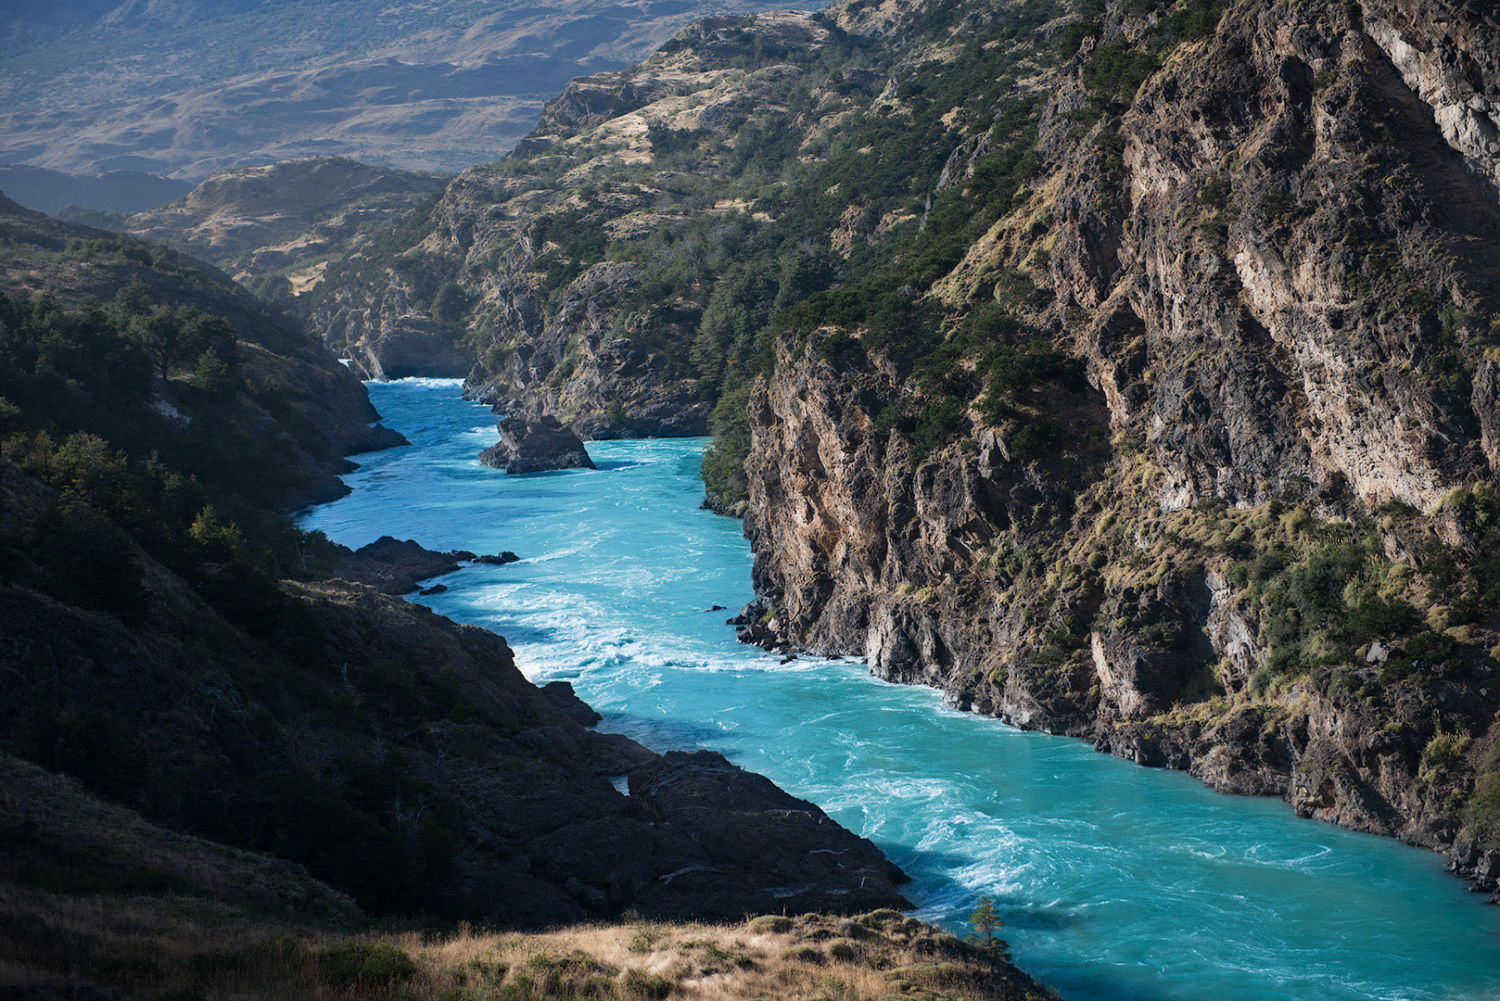 Should Rivers Have Rights A Growing Movement Says Its About Time Cascadia Hydrogen Practical Guide To Free Energy Devices The Flowing Baker River In Chiles Patagonia Region Permits For Major Hydroelectric